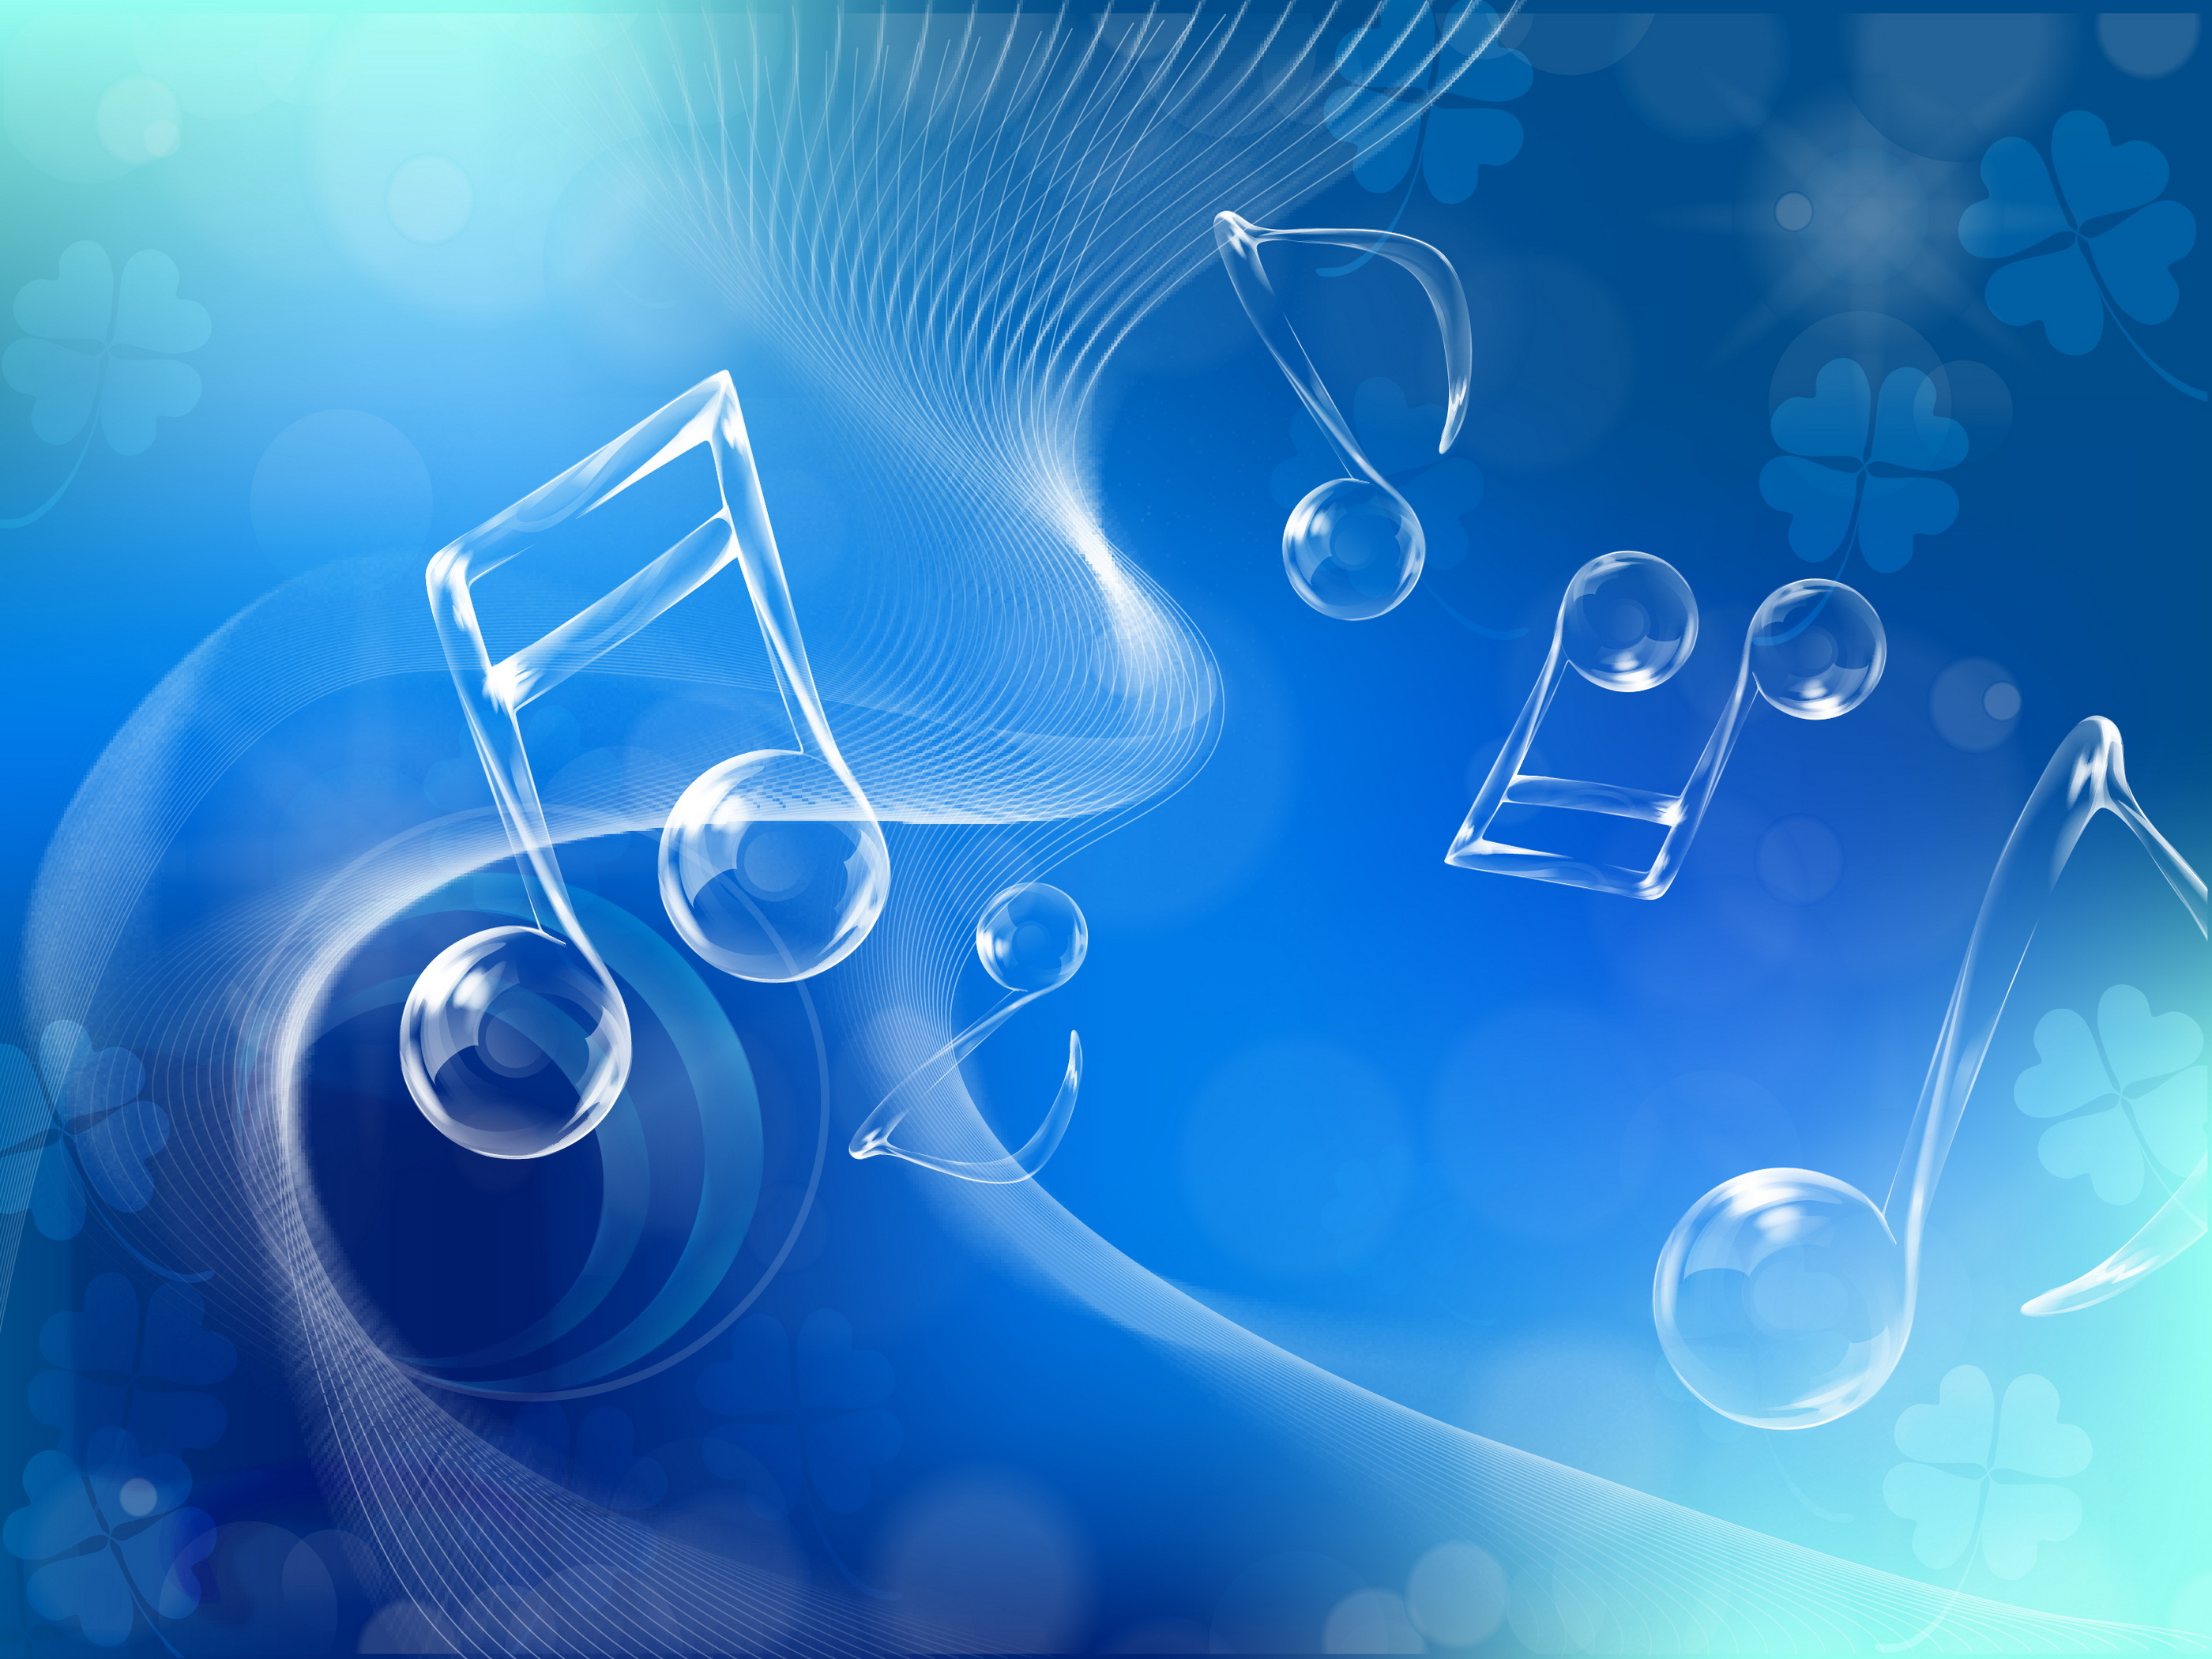 Hd Blue Background Musical Symbol, Blue, Music, Symbol